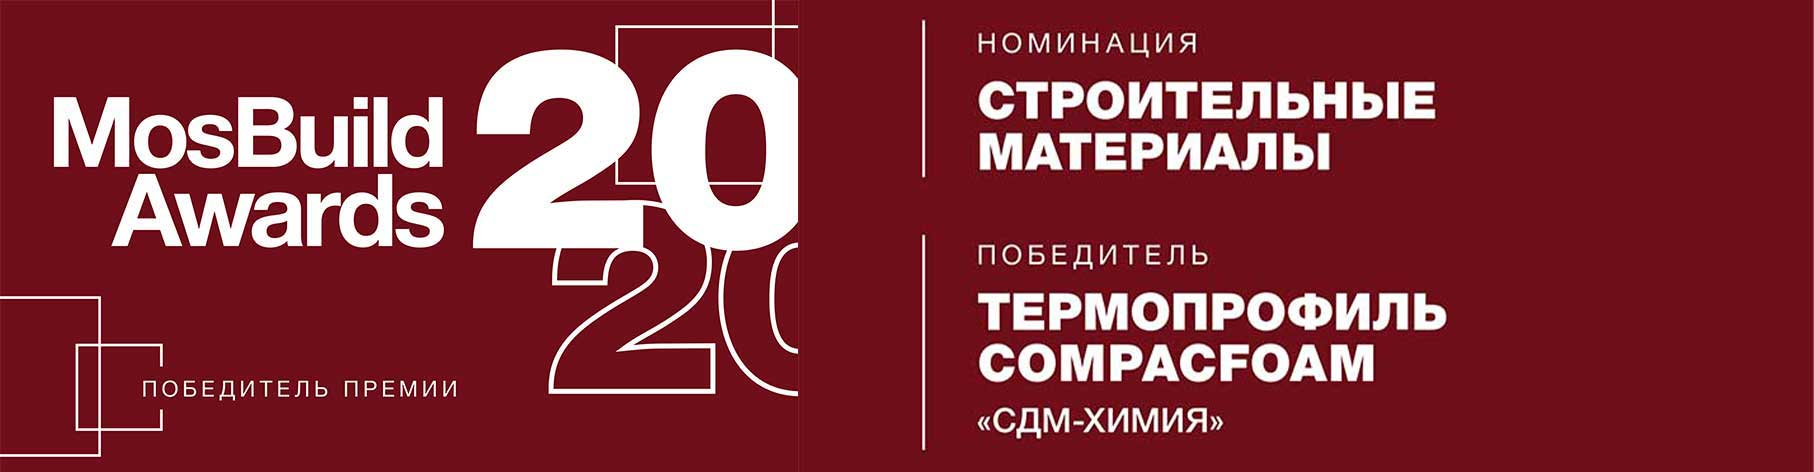 Термопрофиль COMPACFOAM – победитель Mosbuild Awards 2020